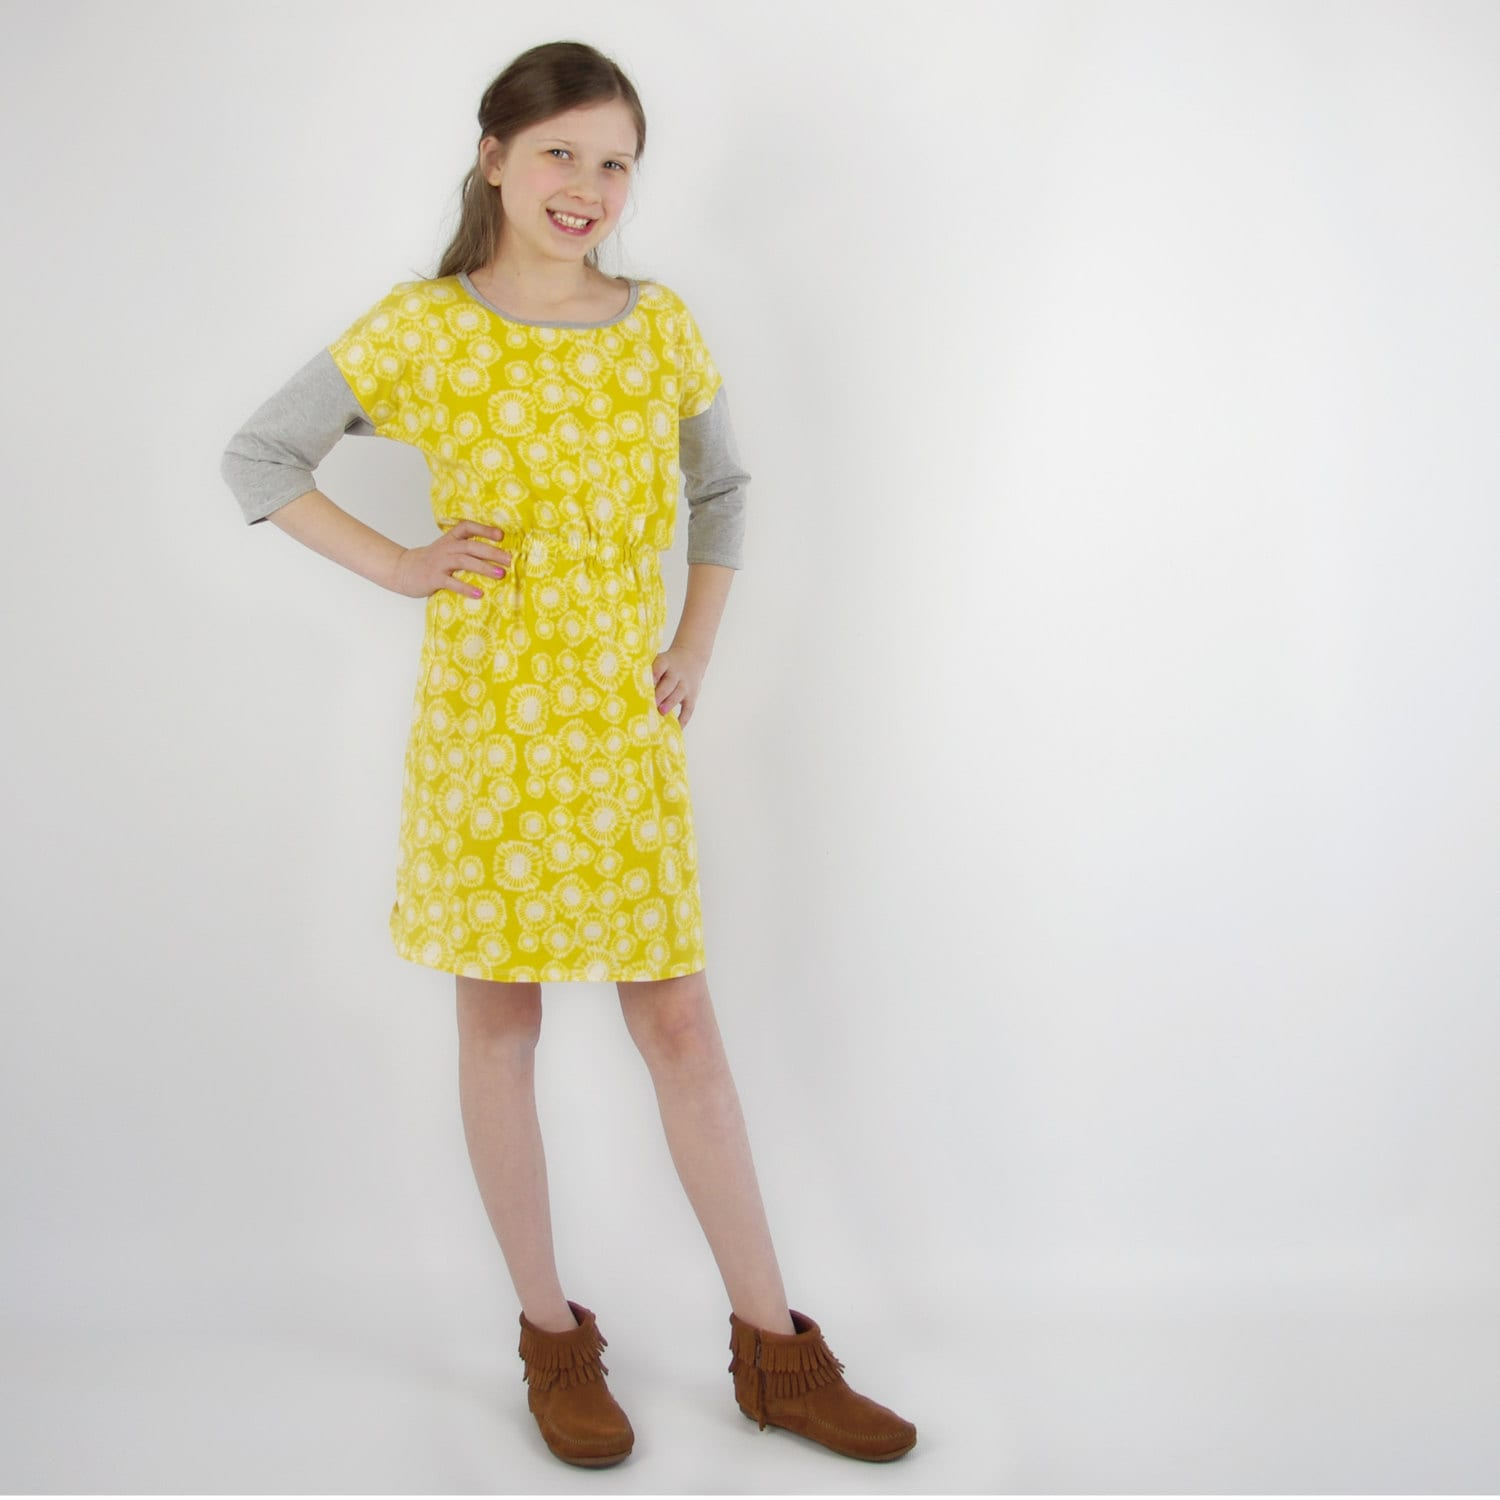 Whimsical Boho Clothing For Kids Tween Girls Dress Yellow